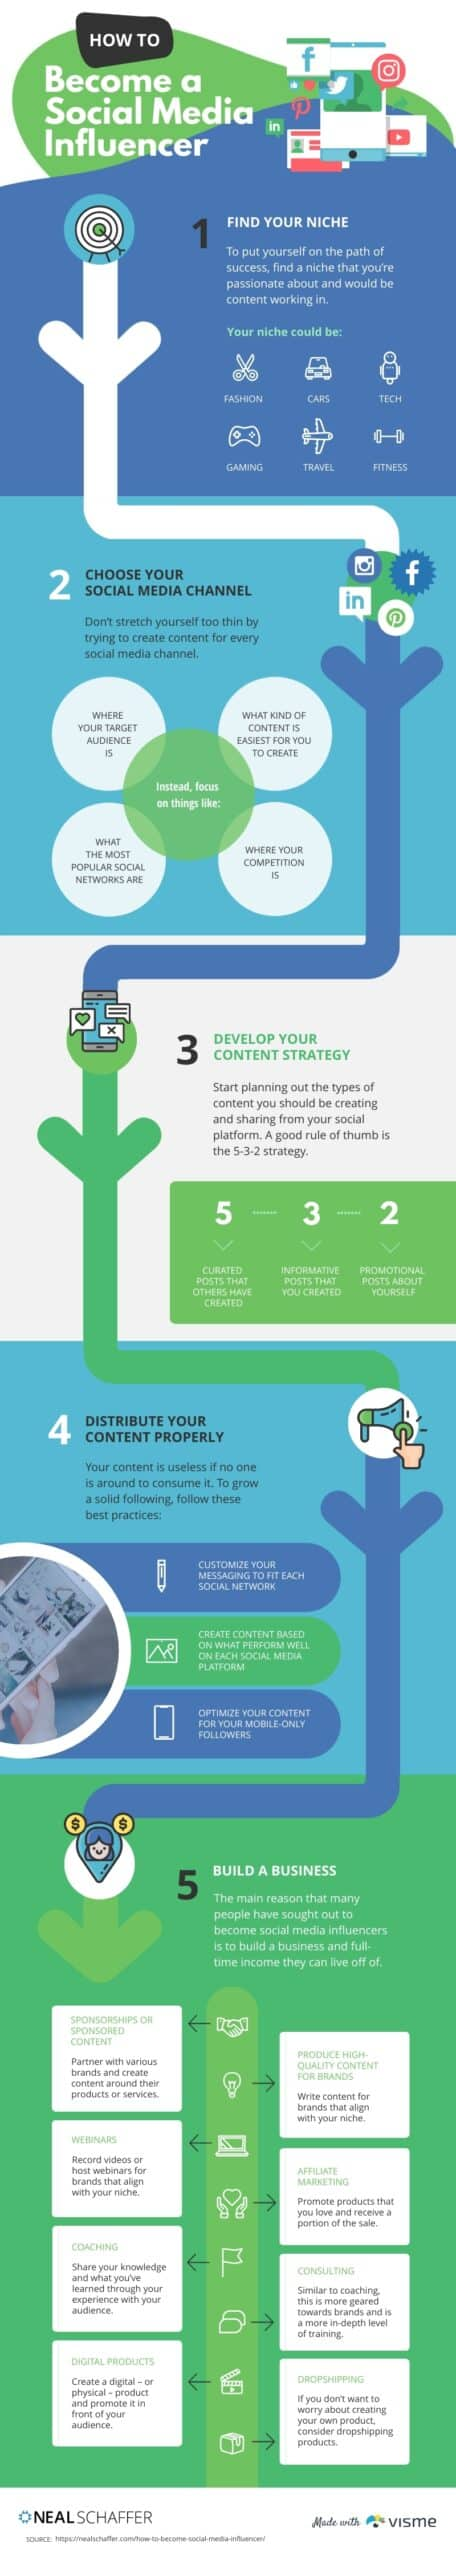 how to become a social media influencer infographic by neal schaffer made with visme